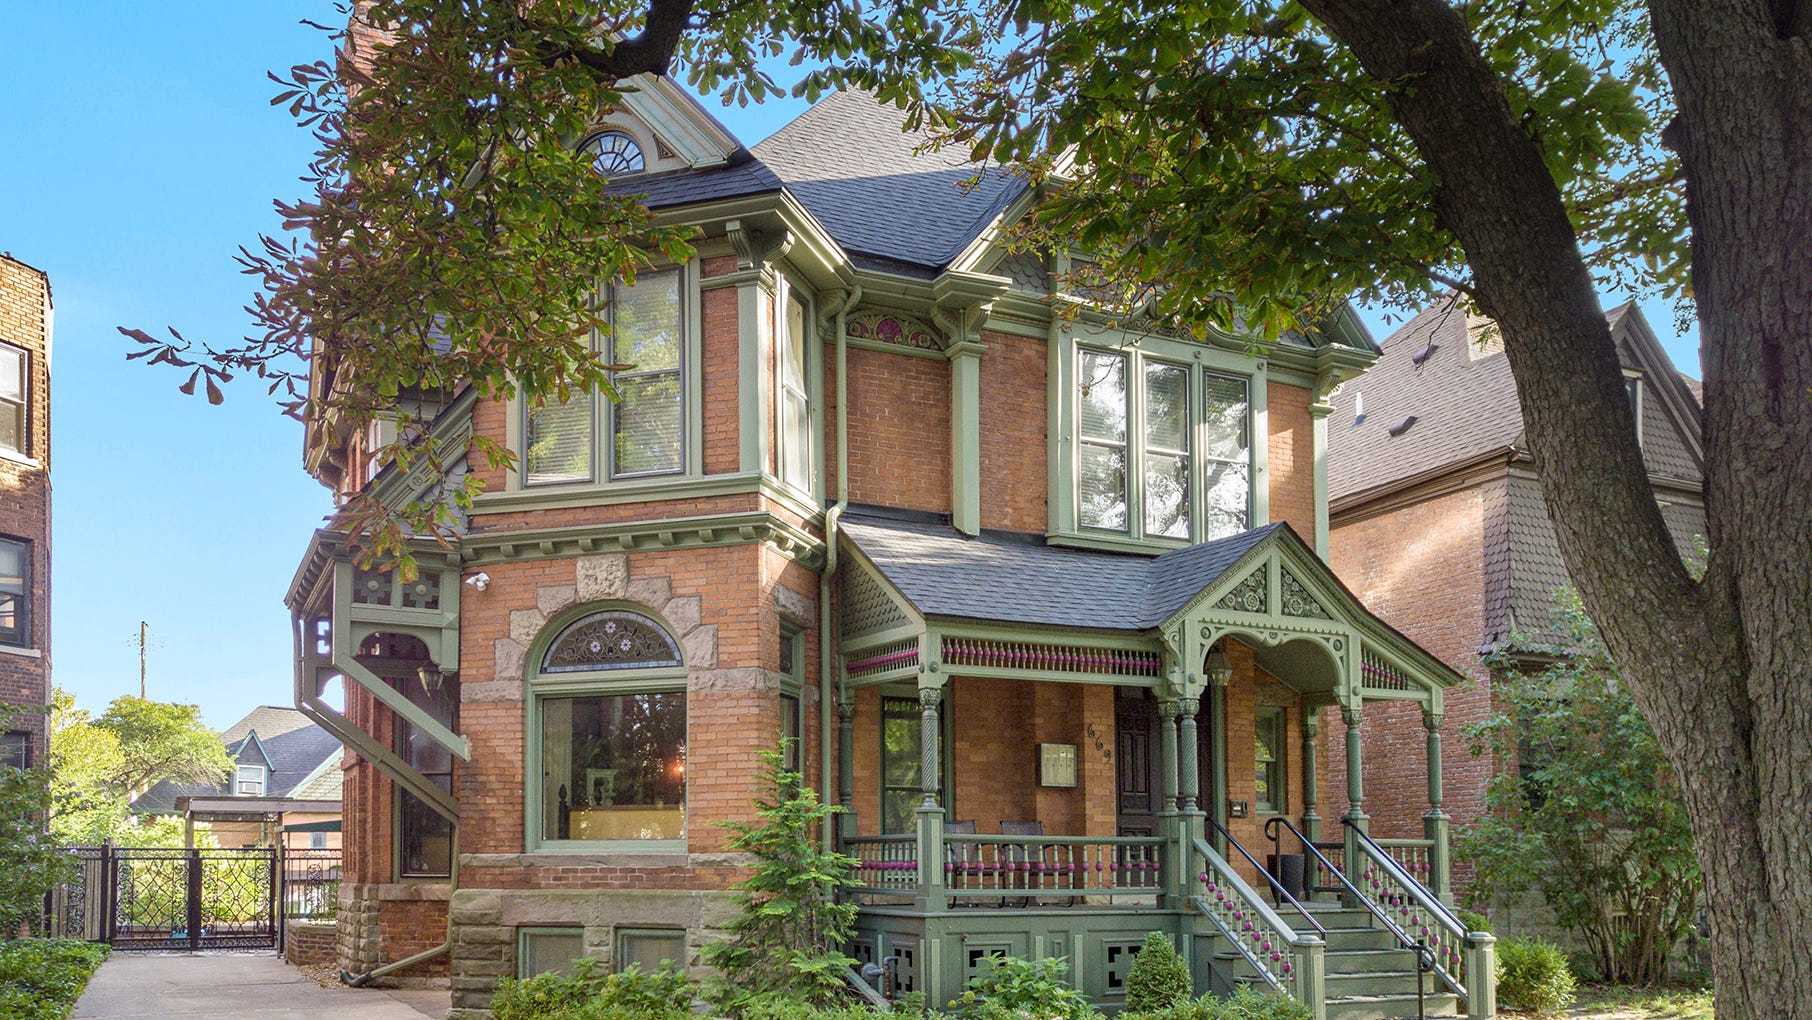 Home and carriage house are right out of 1870s Detroit